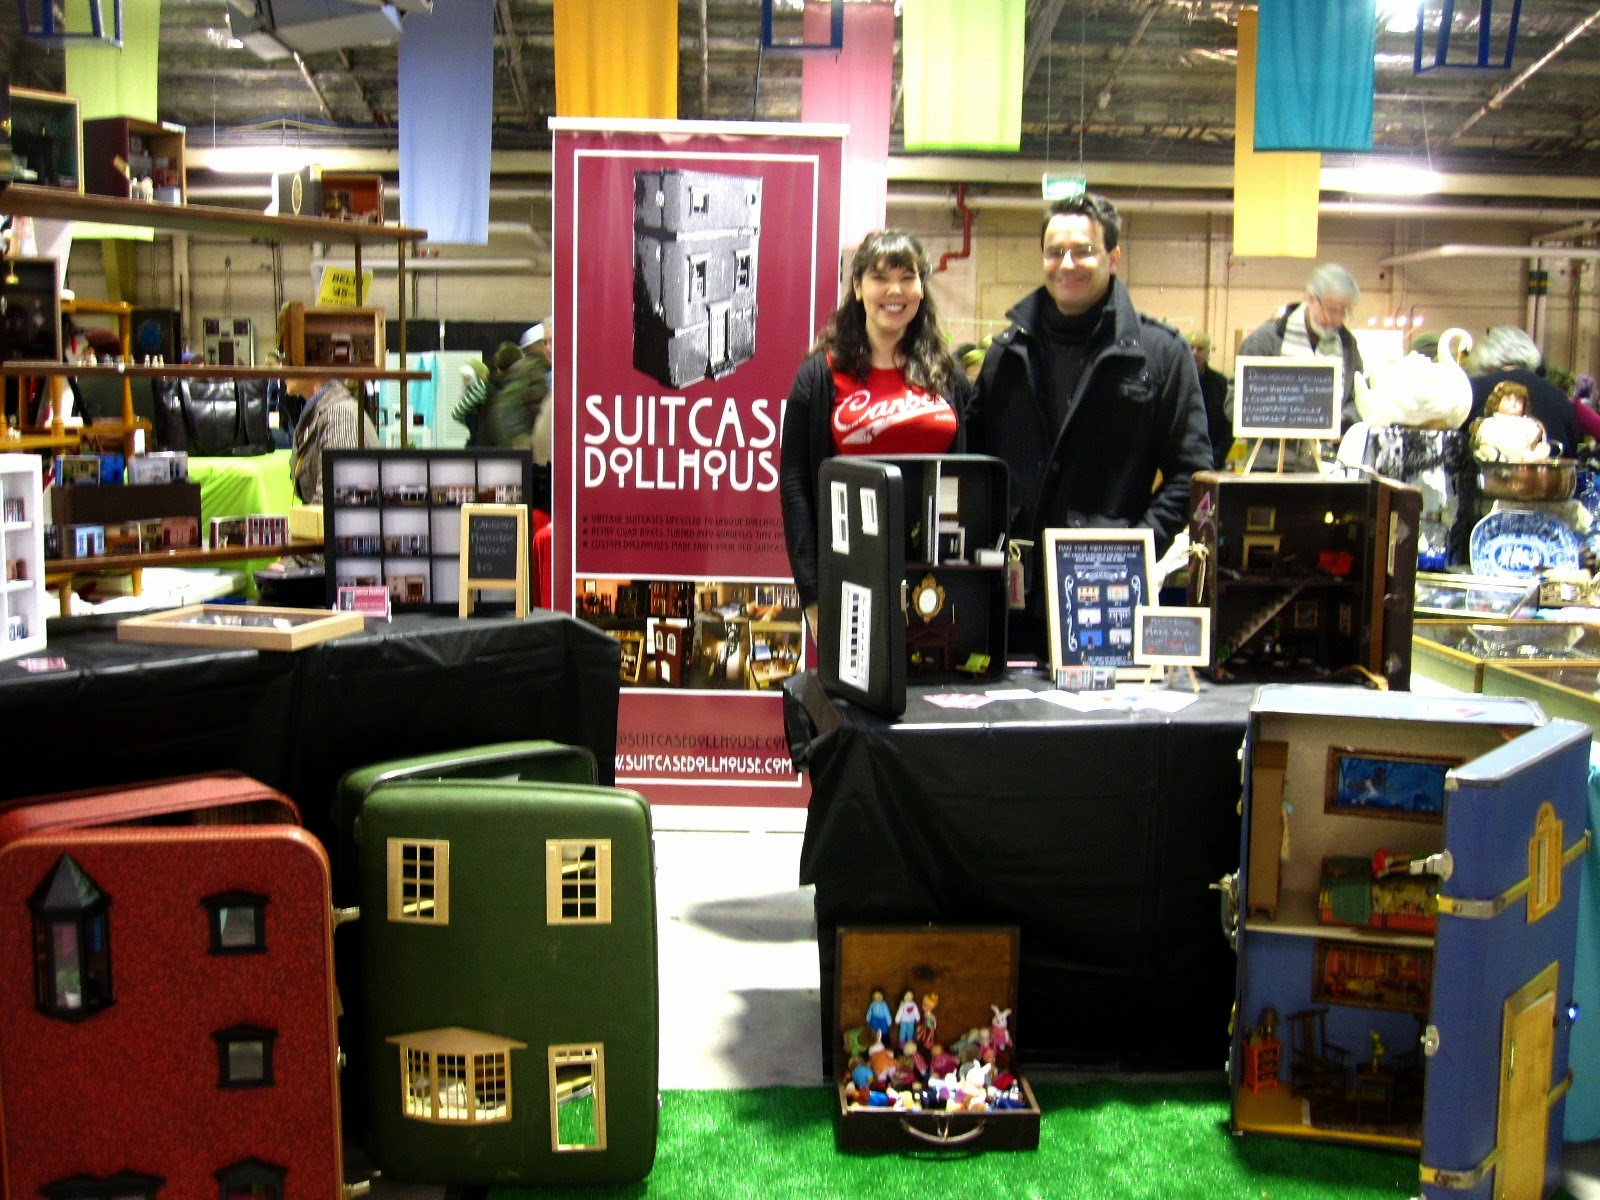 The Suitcase Dollhouse stall at the Old Bus Depot Markets at Kingston, with owners Marisa and David next to their banner.